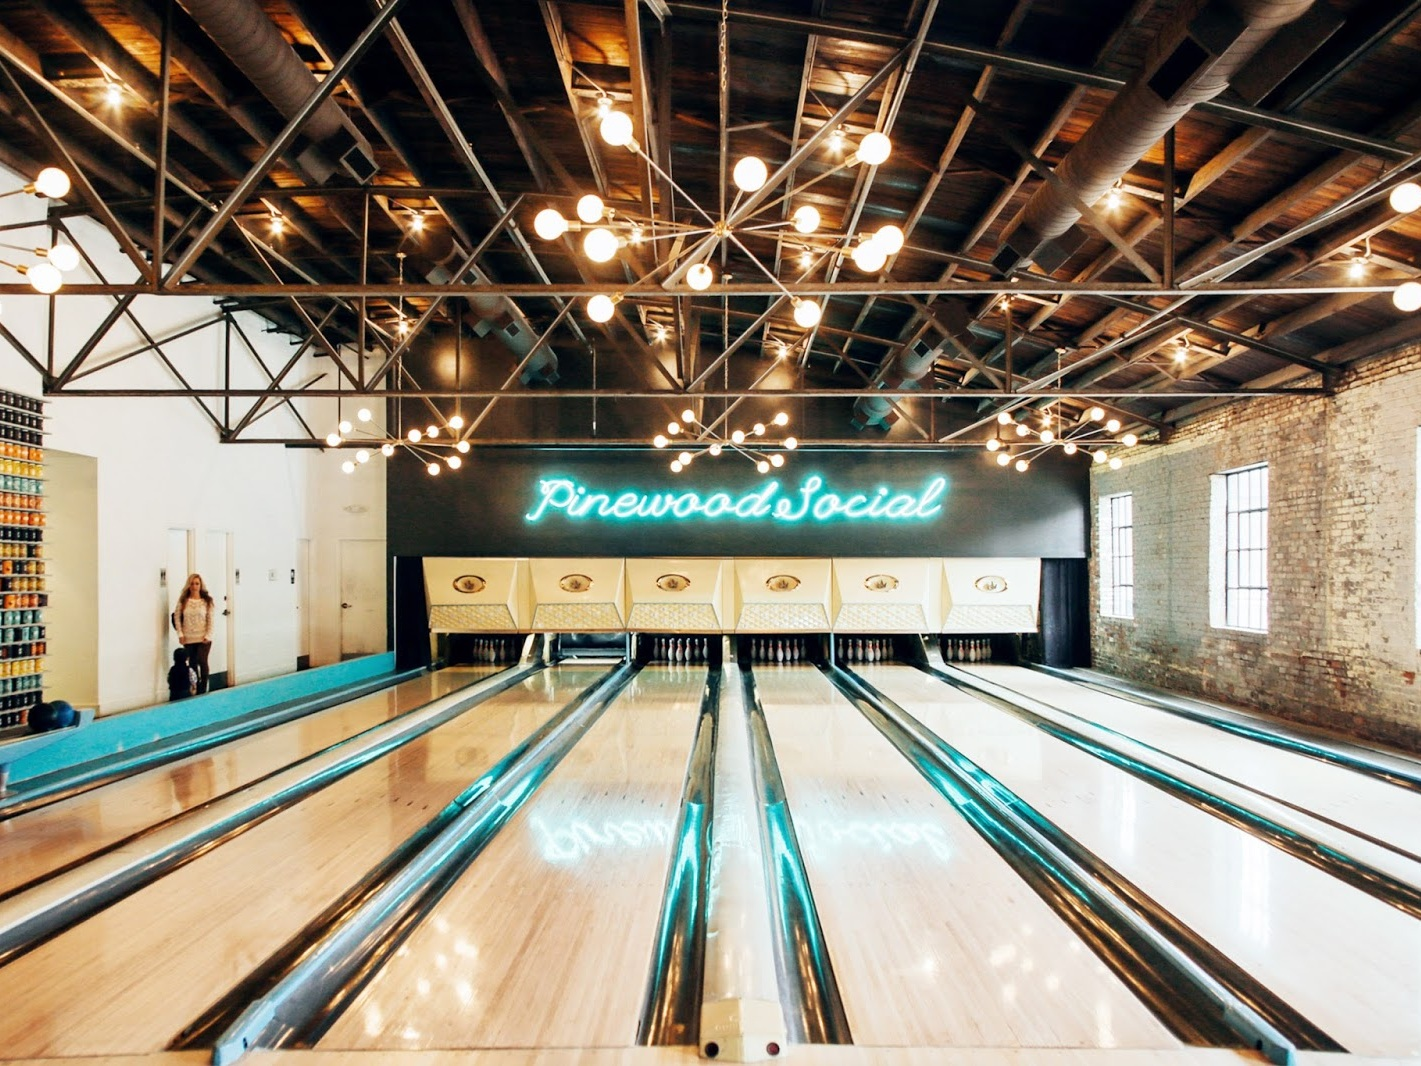 Bowling Alley at Pinewood Social